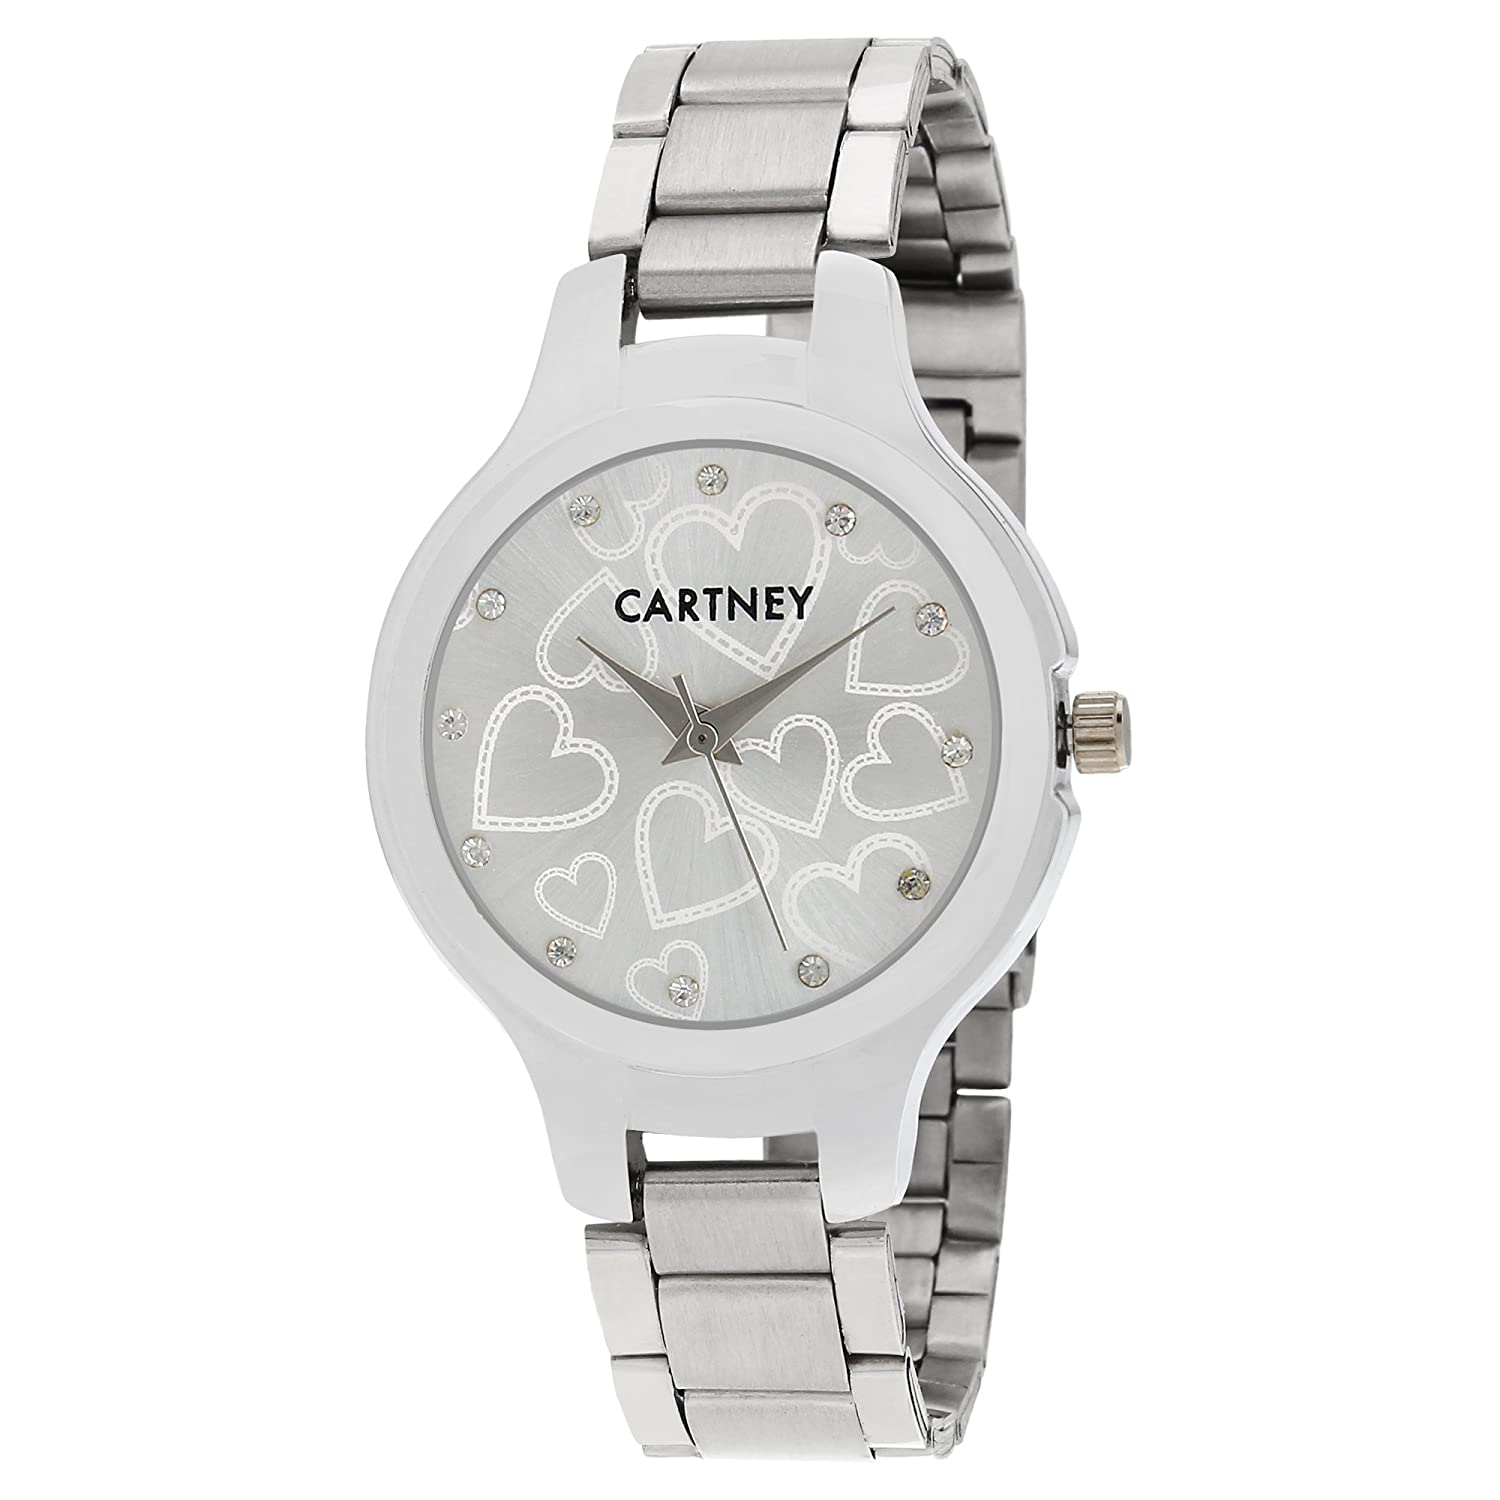 CARTNEY Heart Dial Analogue Watch Round Shape For Women & Girl's - CH44